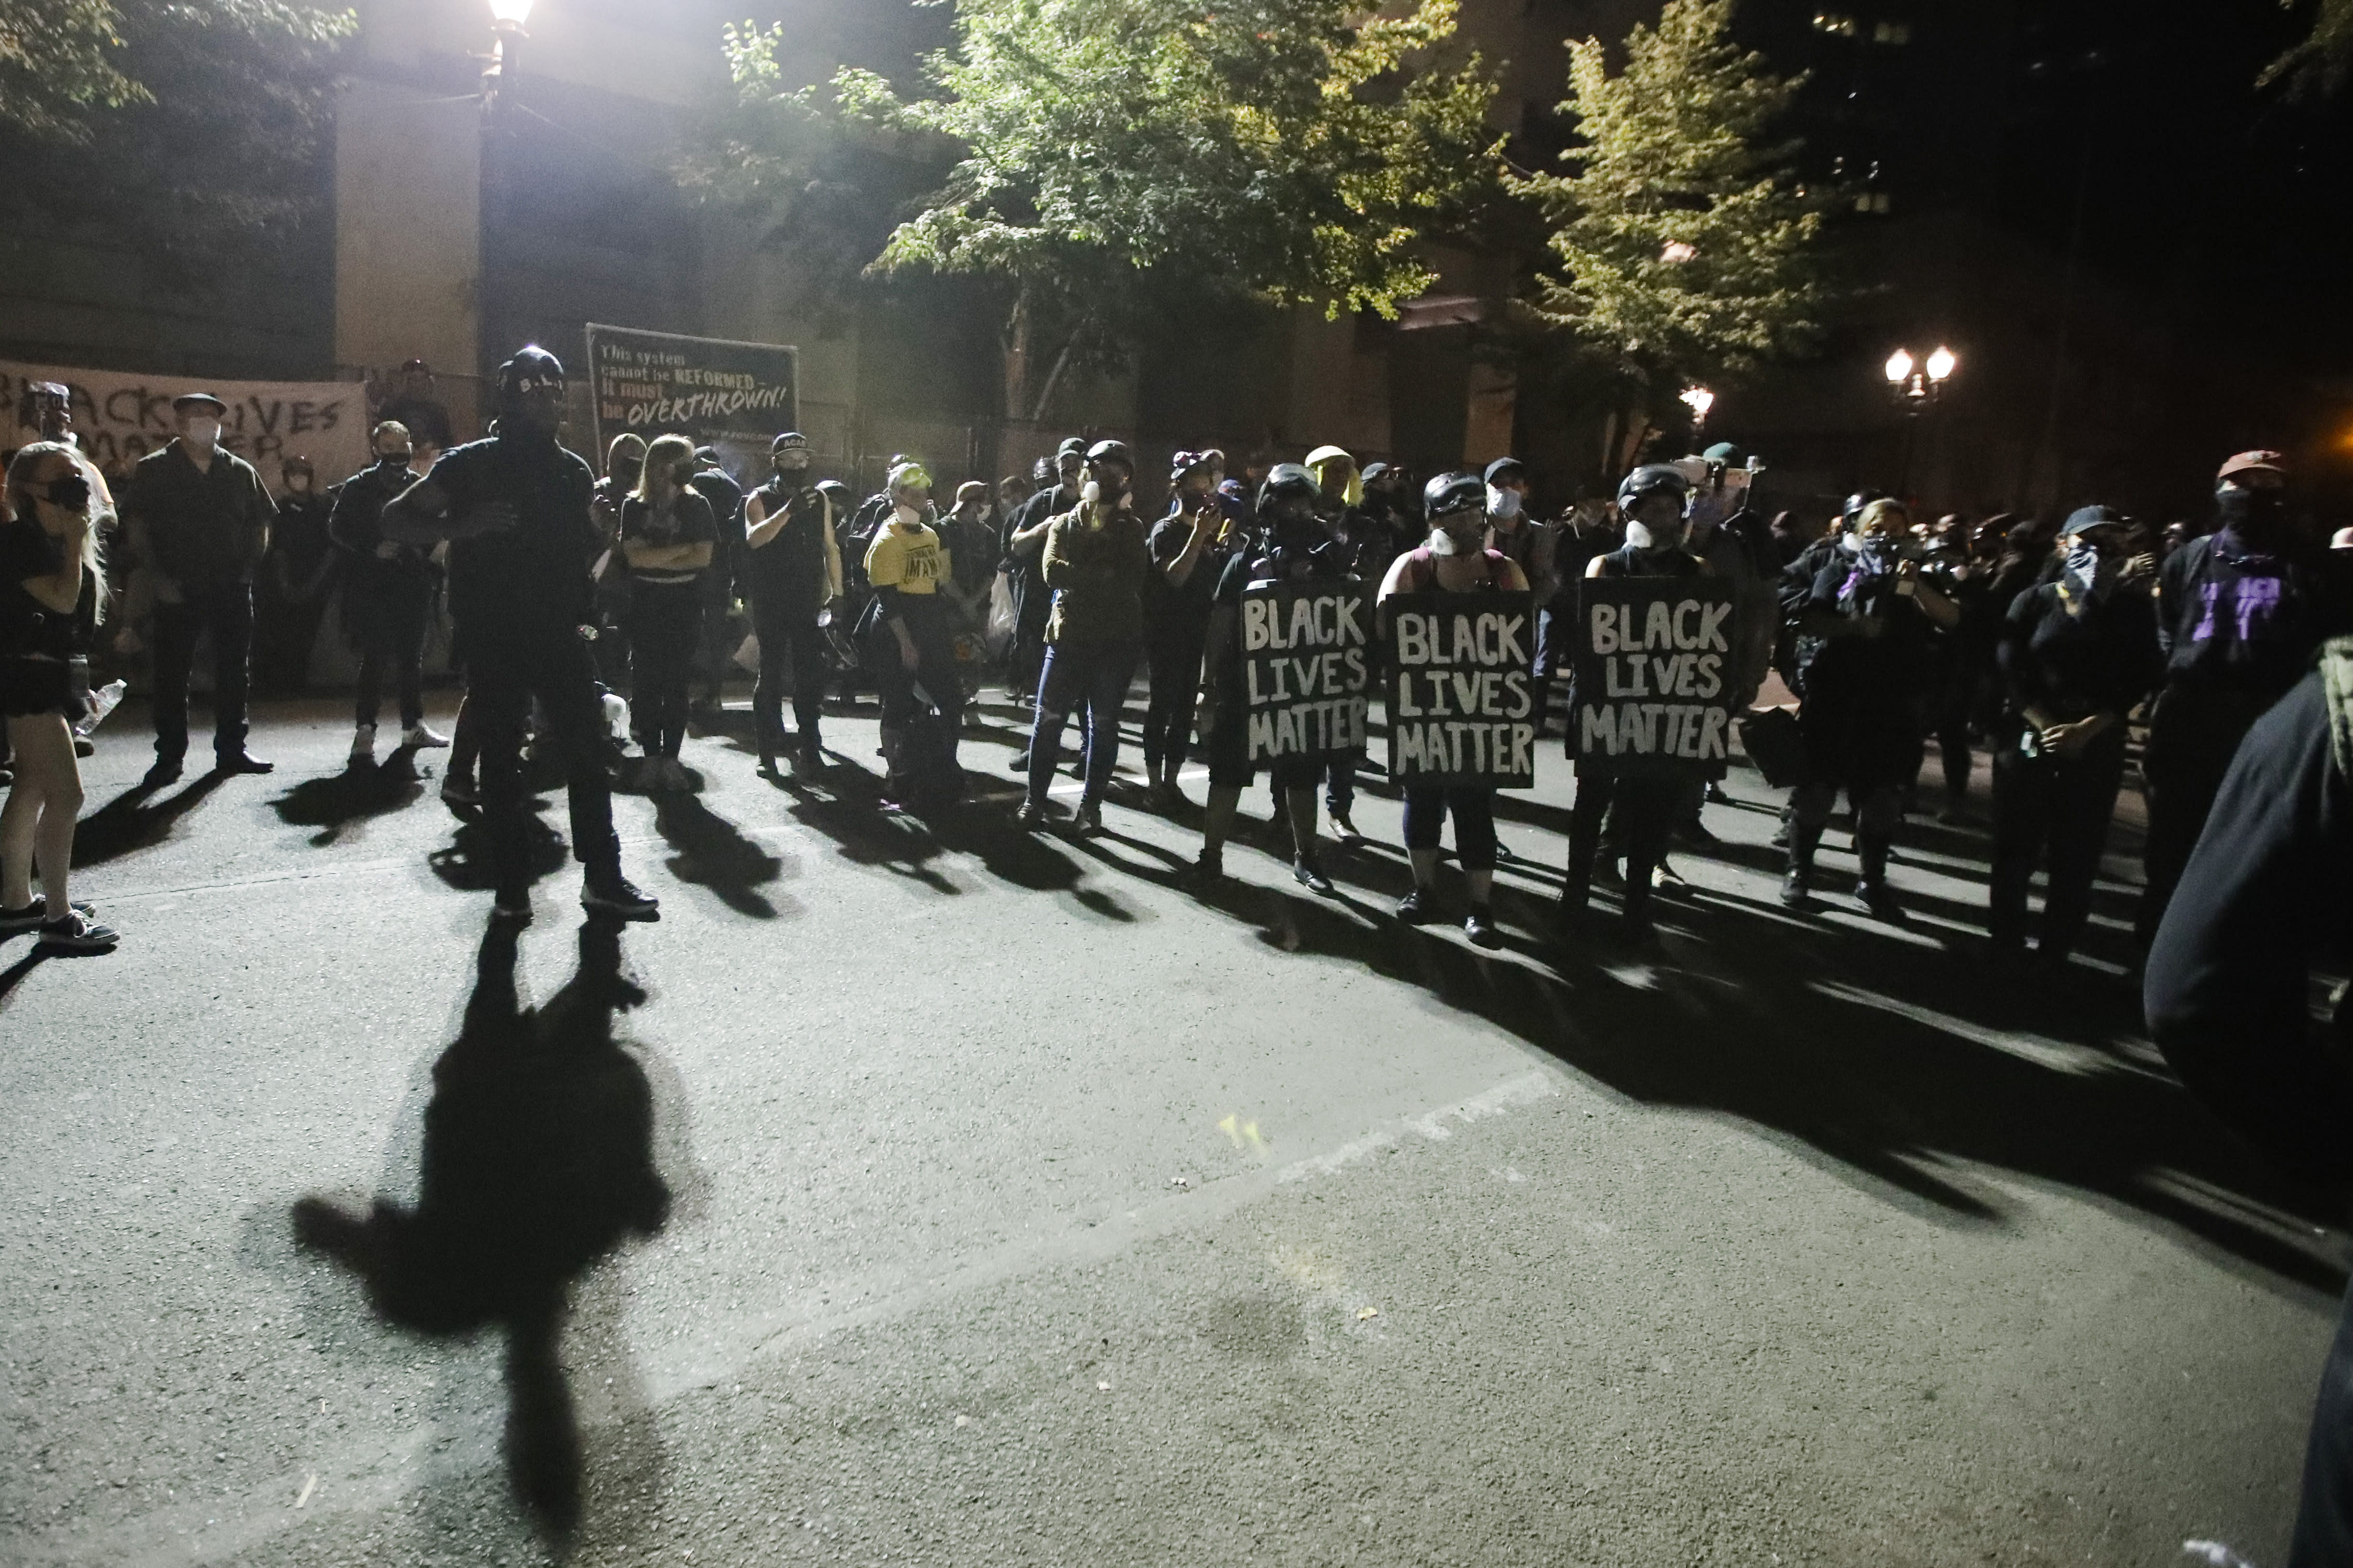 A crowd gathers during a Black Lives Matter protest at the Mark O. Hatfield United States Courthouse Thursday, July 30, 2020, in Portland, Ore. After days of clashes with federal police, the crowd outside of the federal courthouse remained peaceful Thursday night. (AP Photo/Marcio Jose Sanchez)